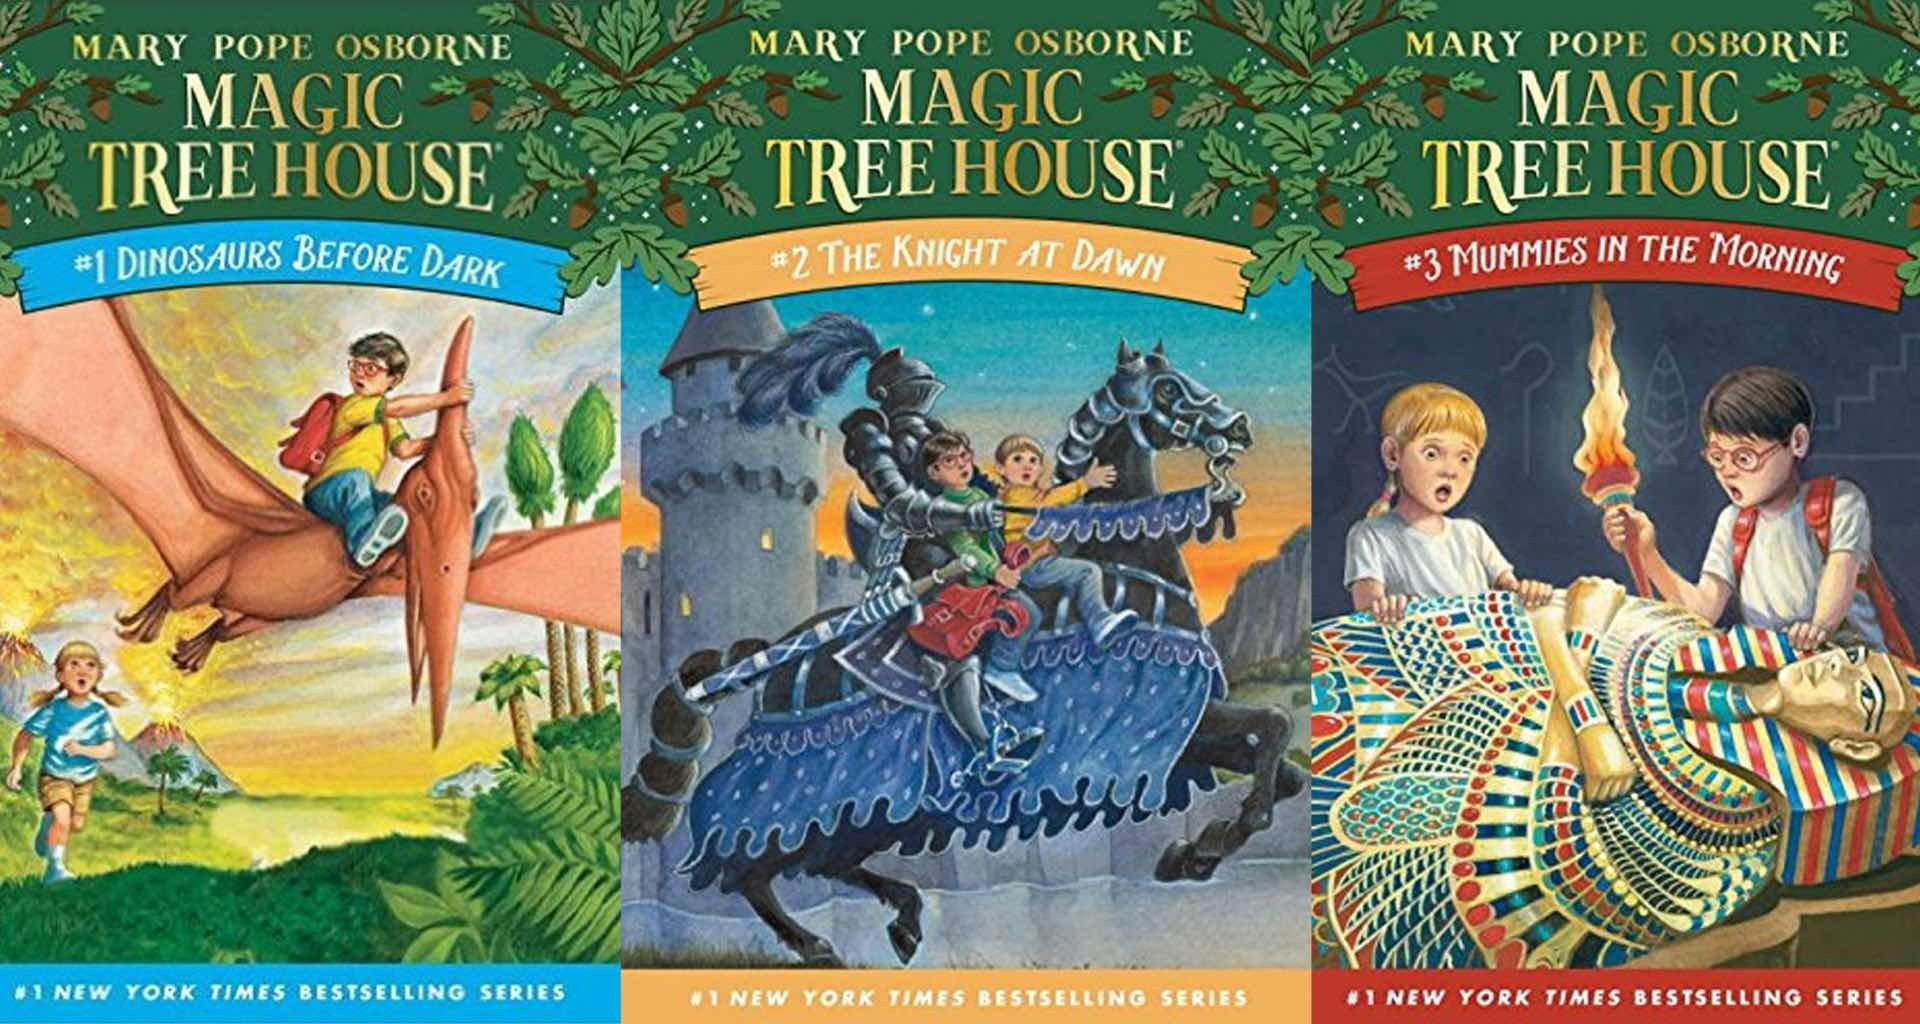 Magic Tree House series by Mary Pope Osborne.